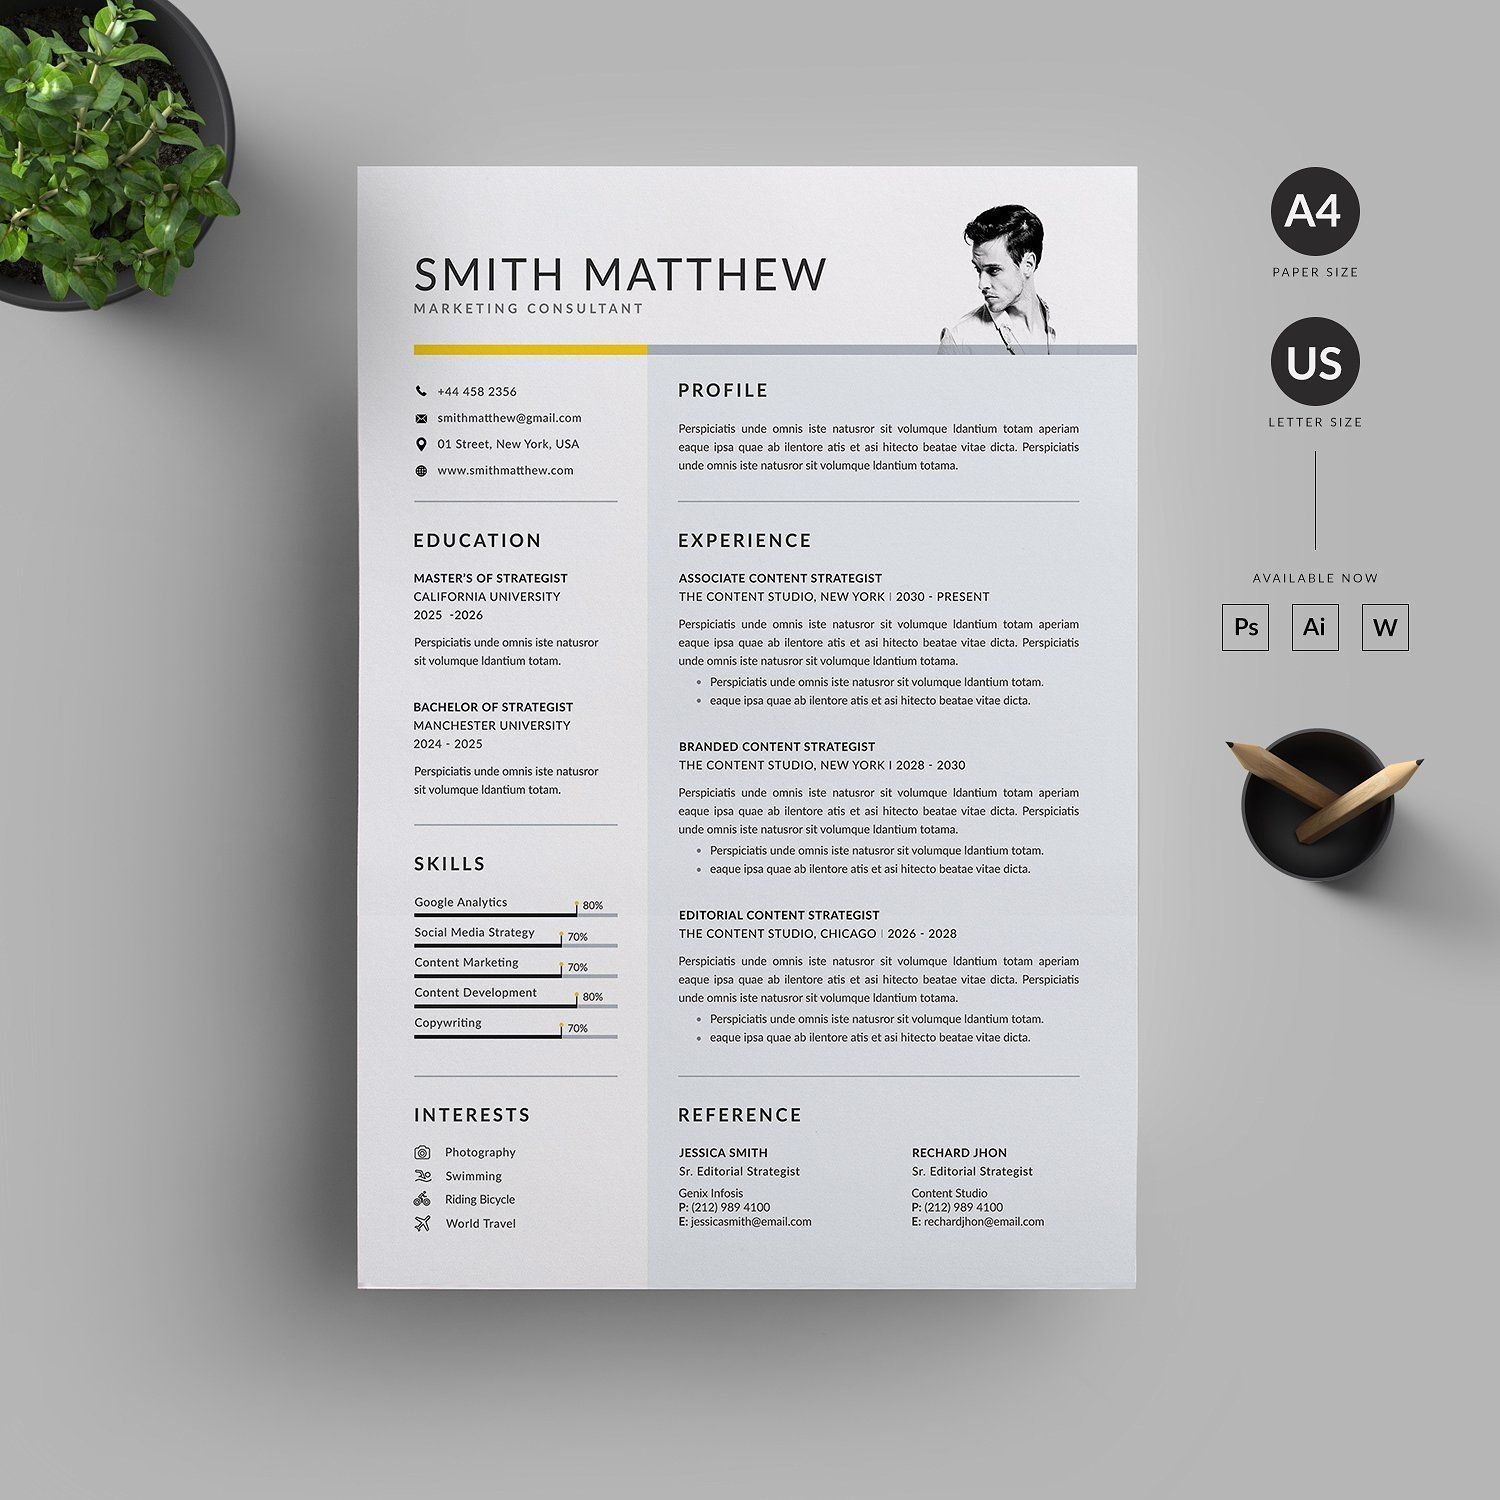 resume cv examples free professional letterhead collections supervisor sample self Resume Professional Resume Letterhead